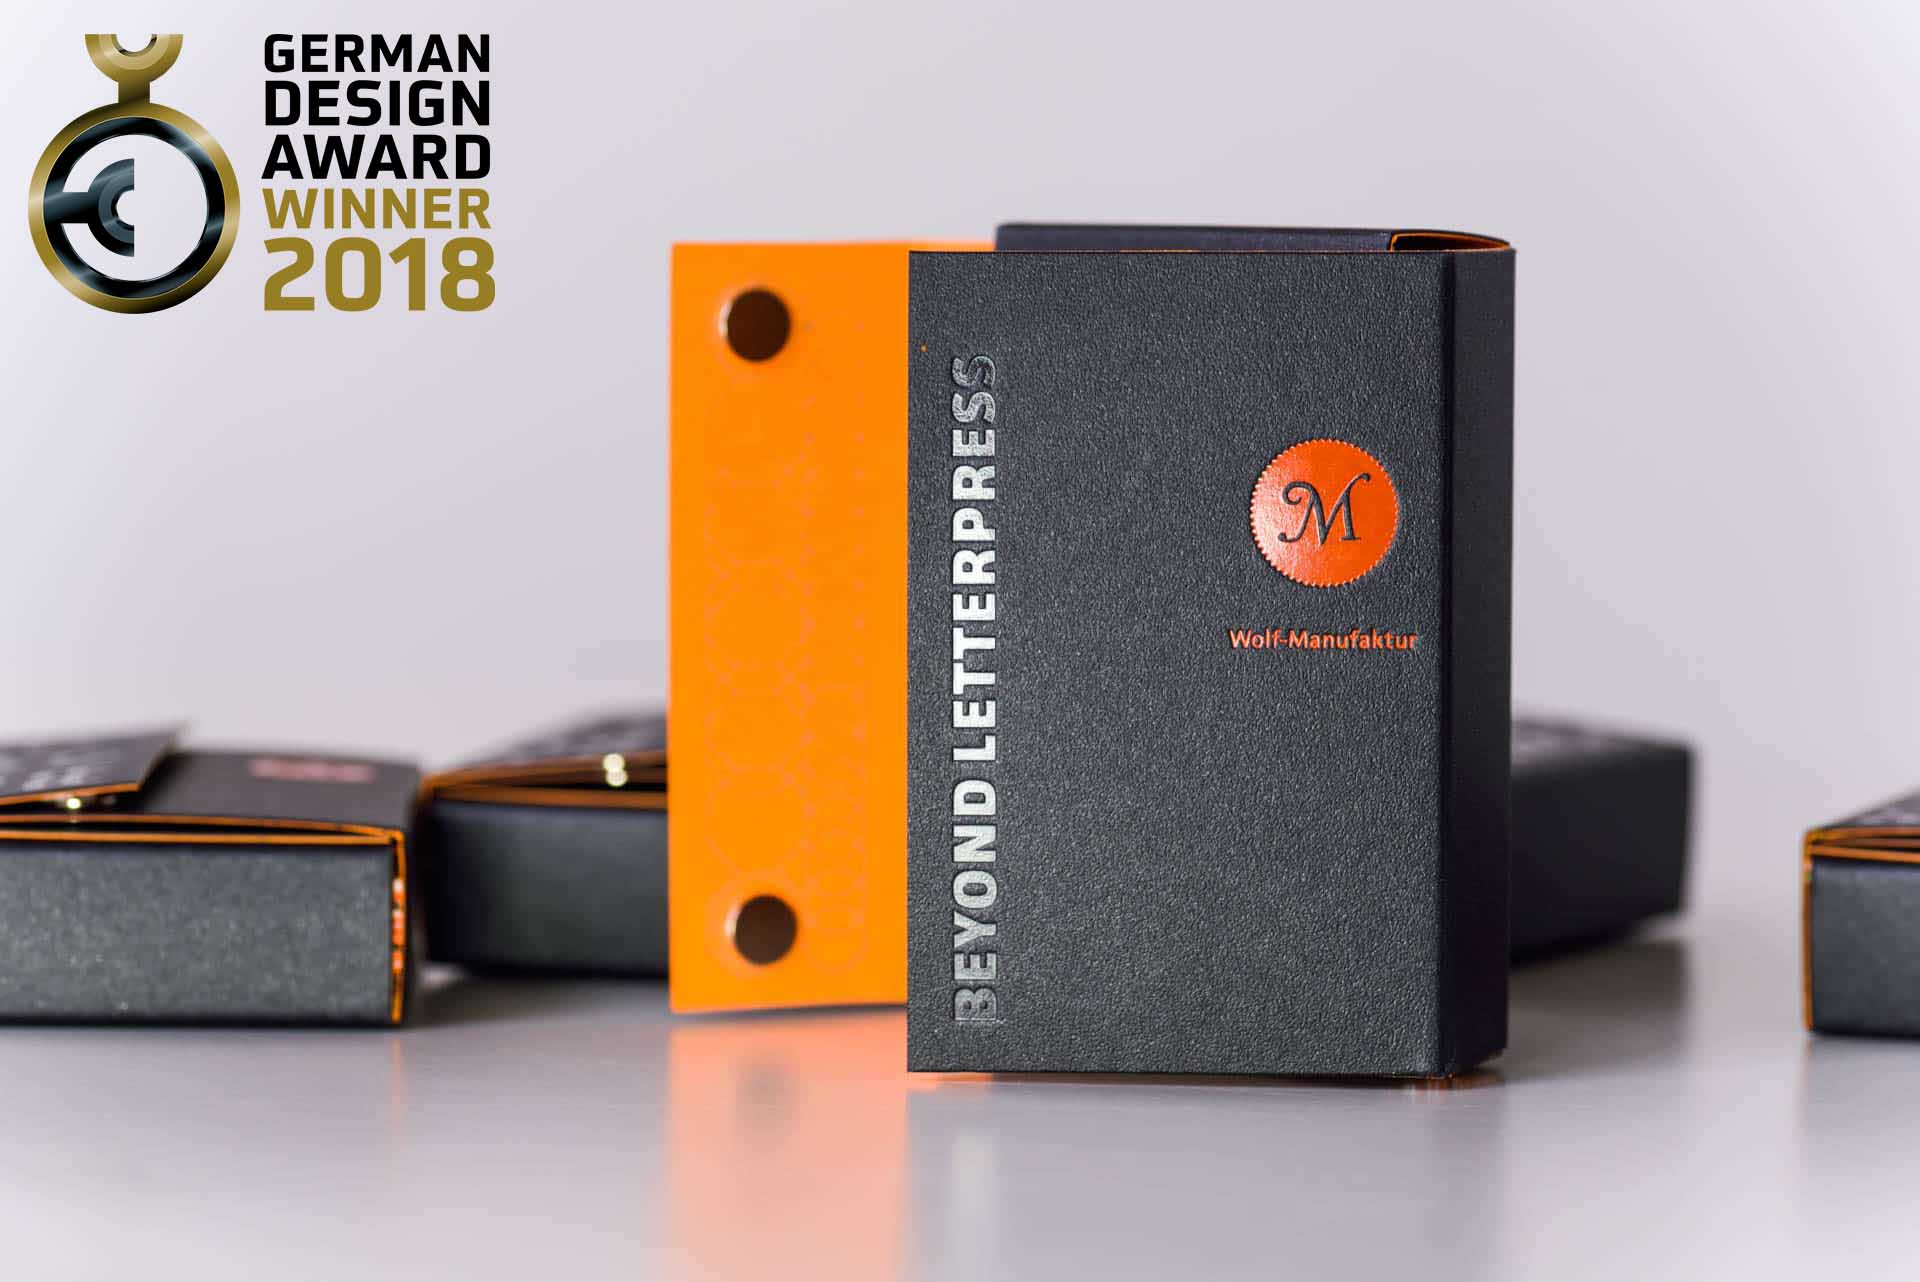 wolf-manufaktur_german-design-award-2018